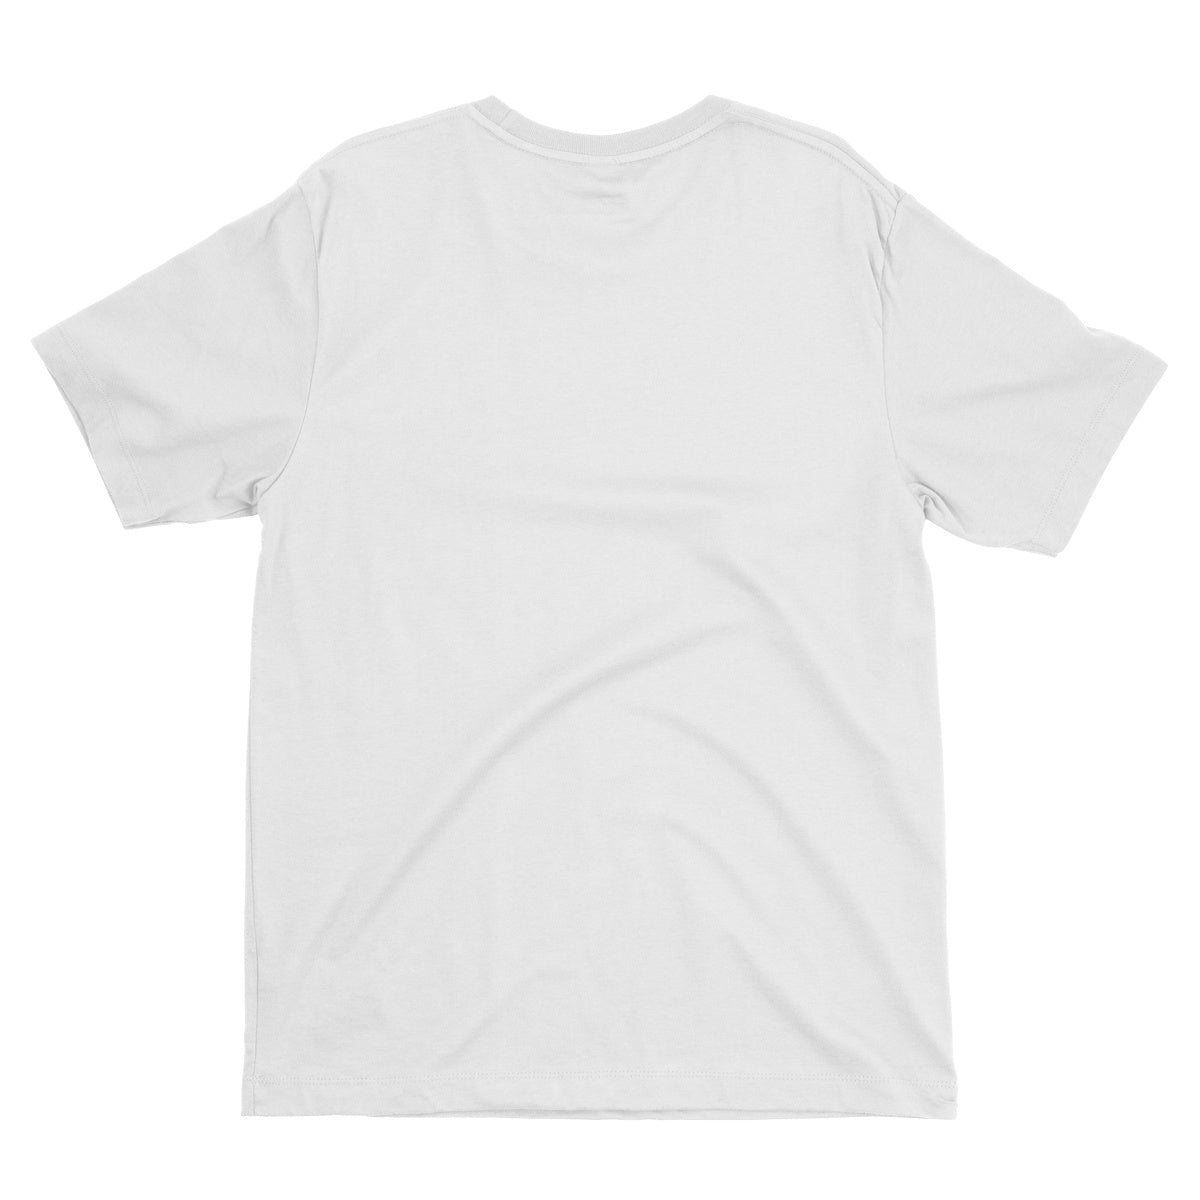 The Cafe Kids' Sublimation T-Shirt